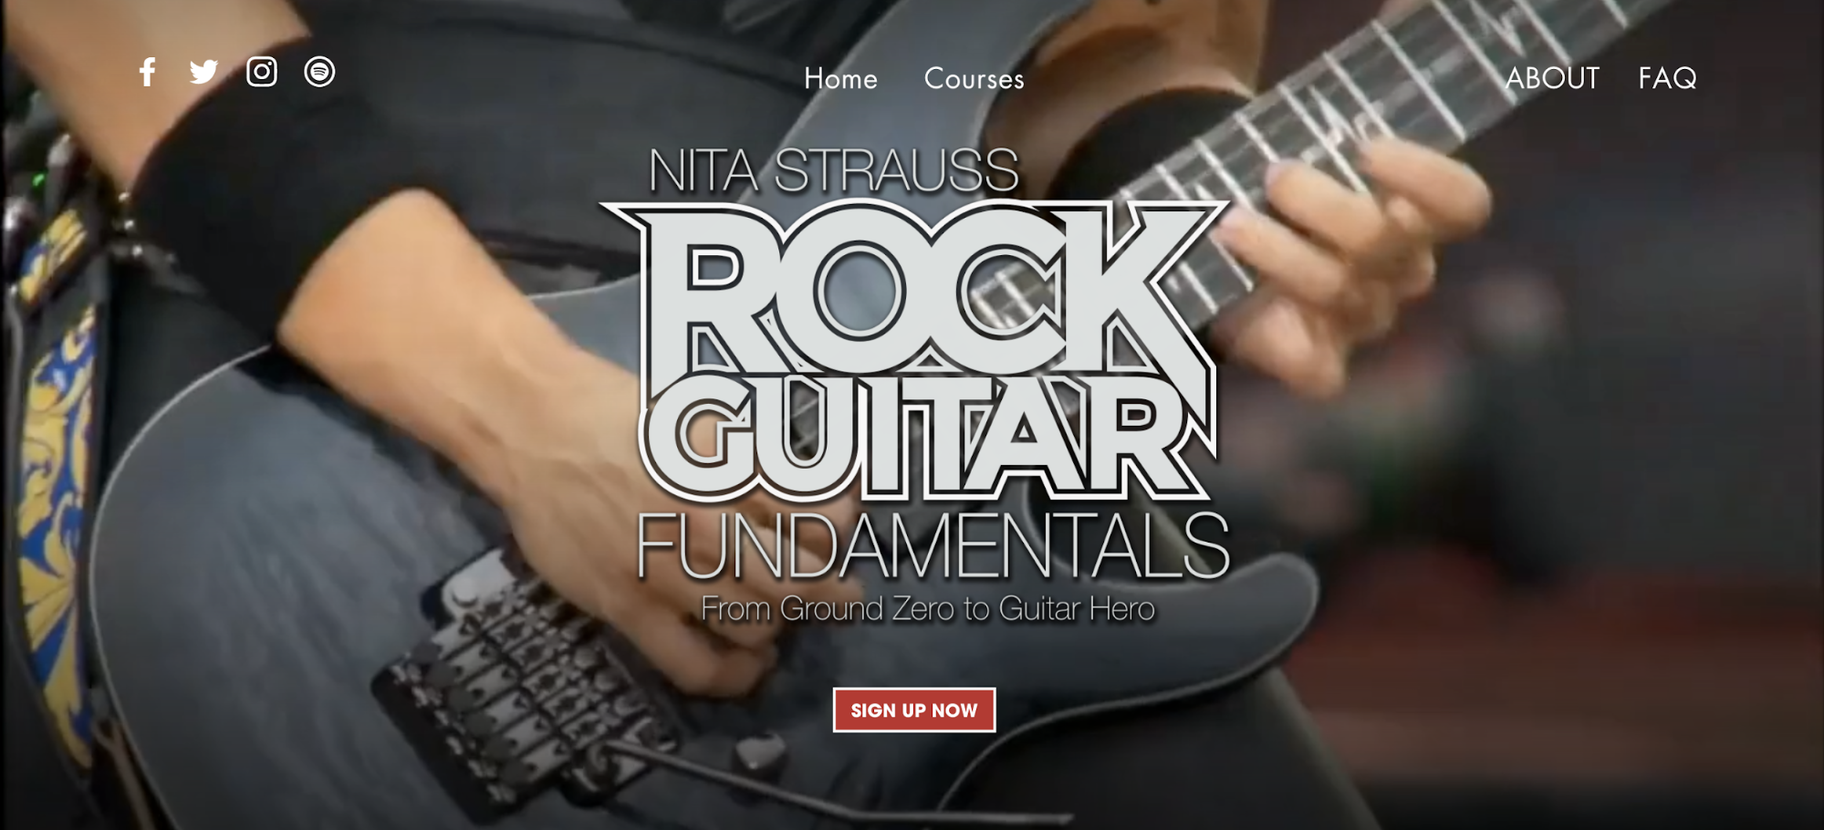 Examples of Digital Products: Nita Strauss – Rock Guitar Fundamentals